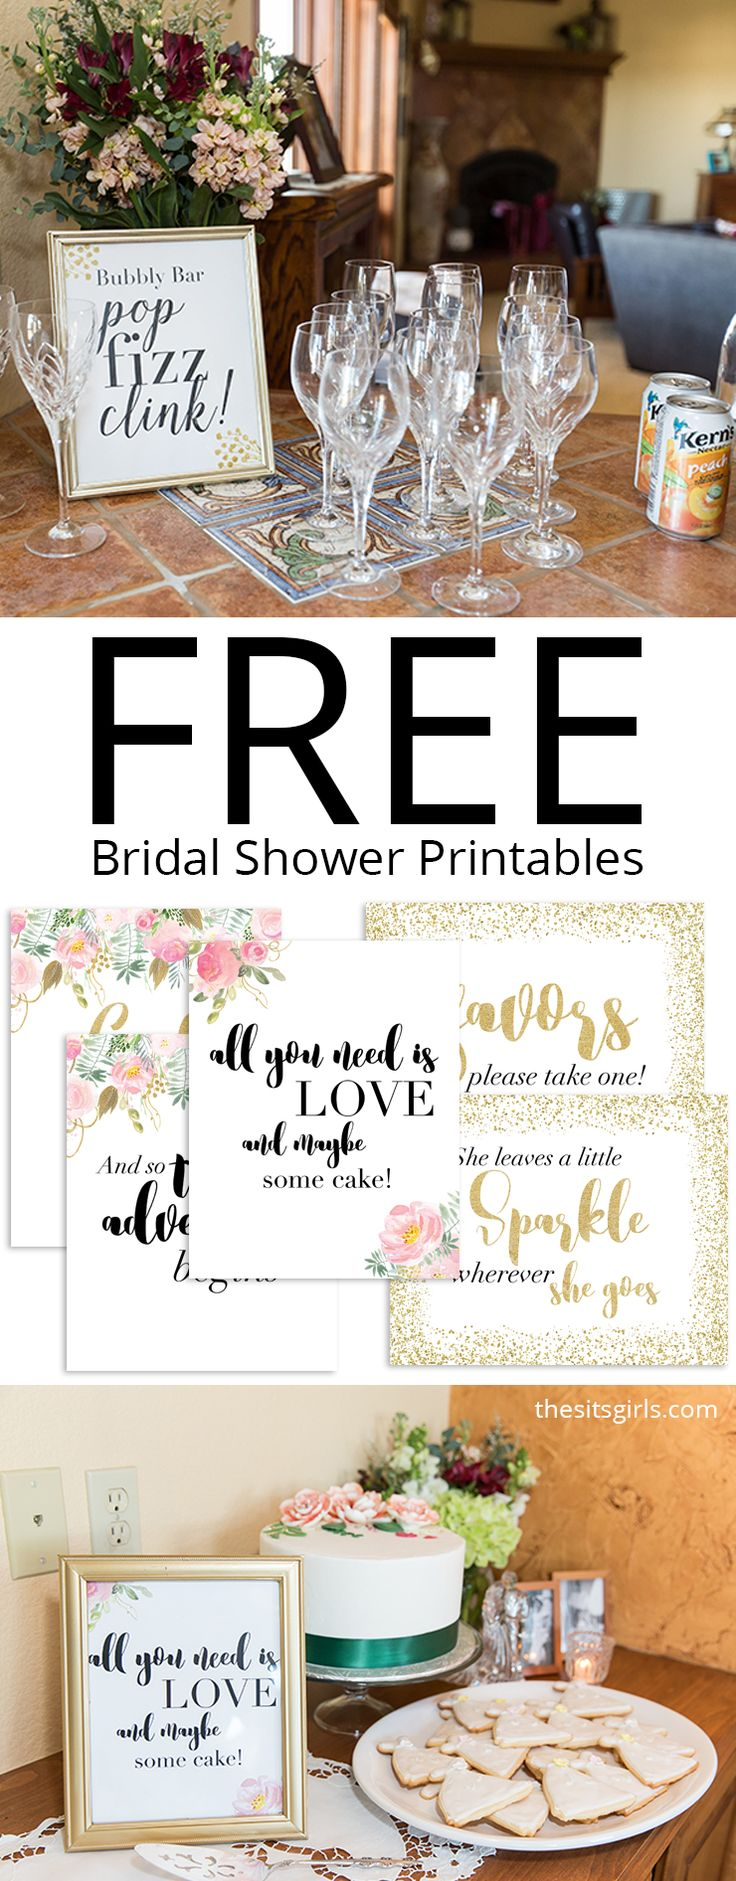 Beautiful bridal shower ideas for food, decor, and games. Plus a packet of free bridal shower printables to use for your next party. #BridalShowerFavors